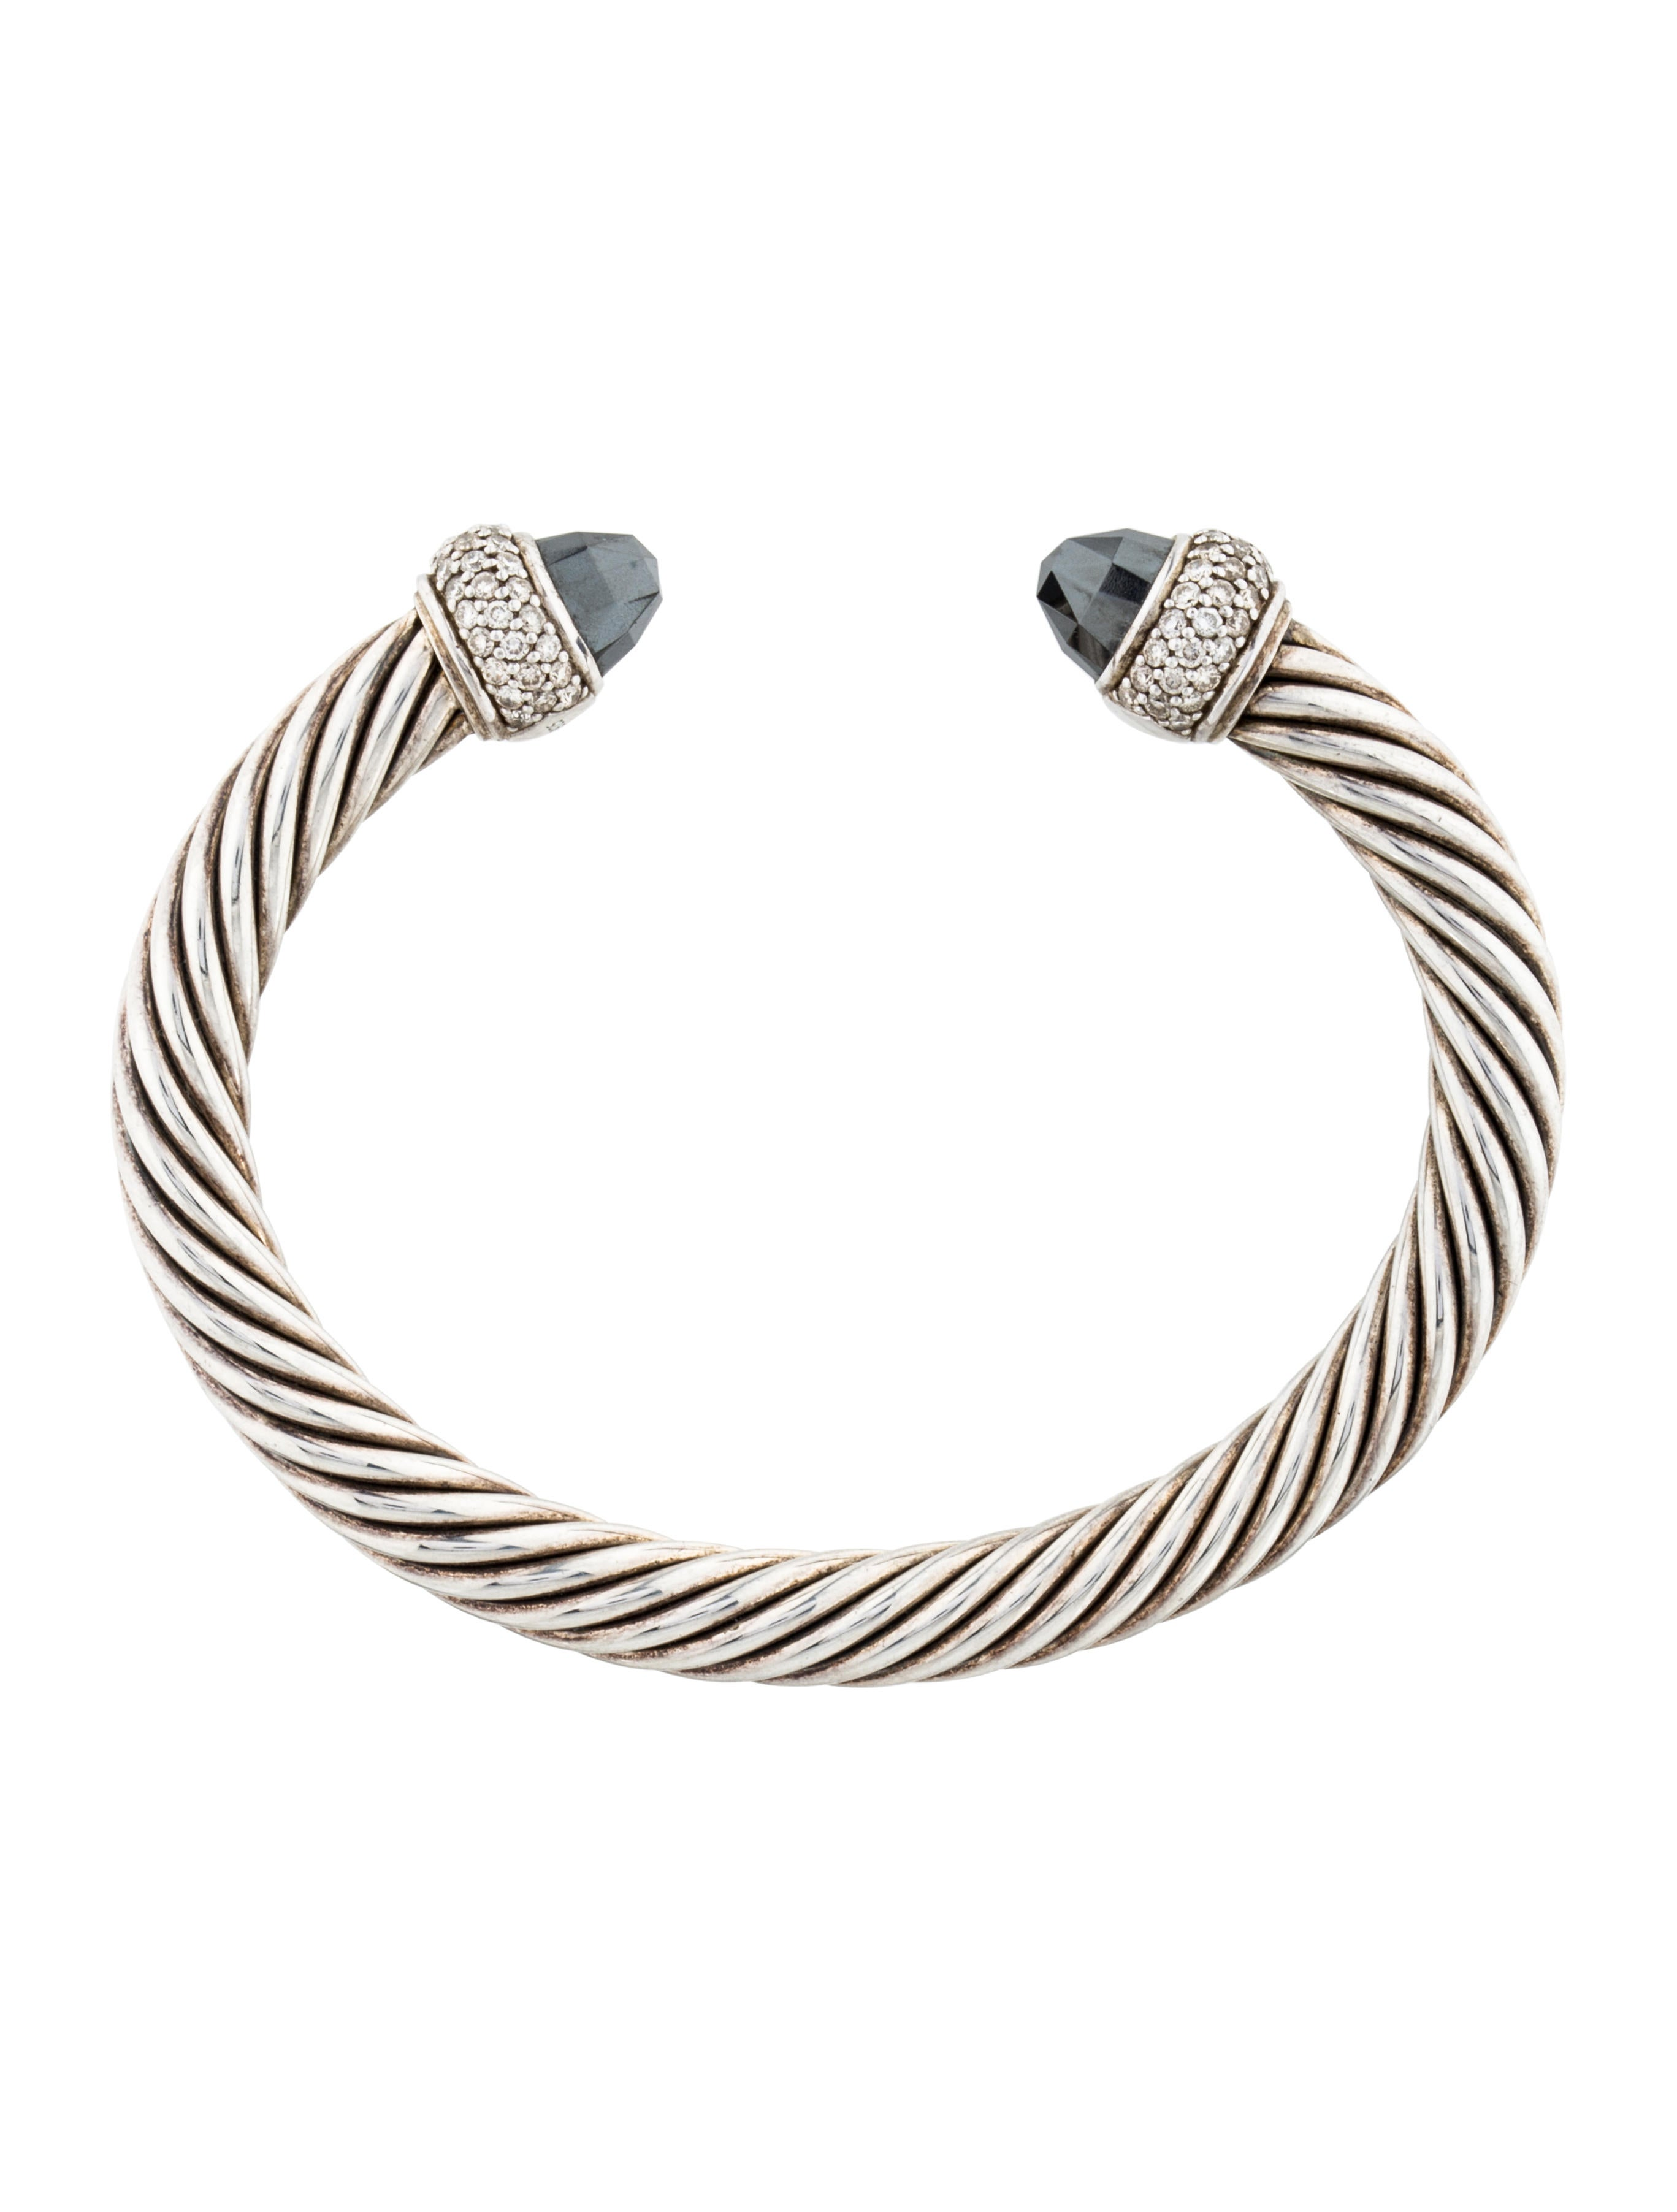 David yurman hematine diamond cable cuff bracelets for David yurman inspired bracelet cable